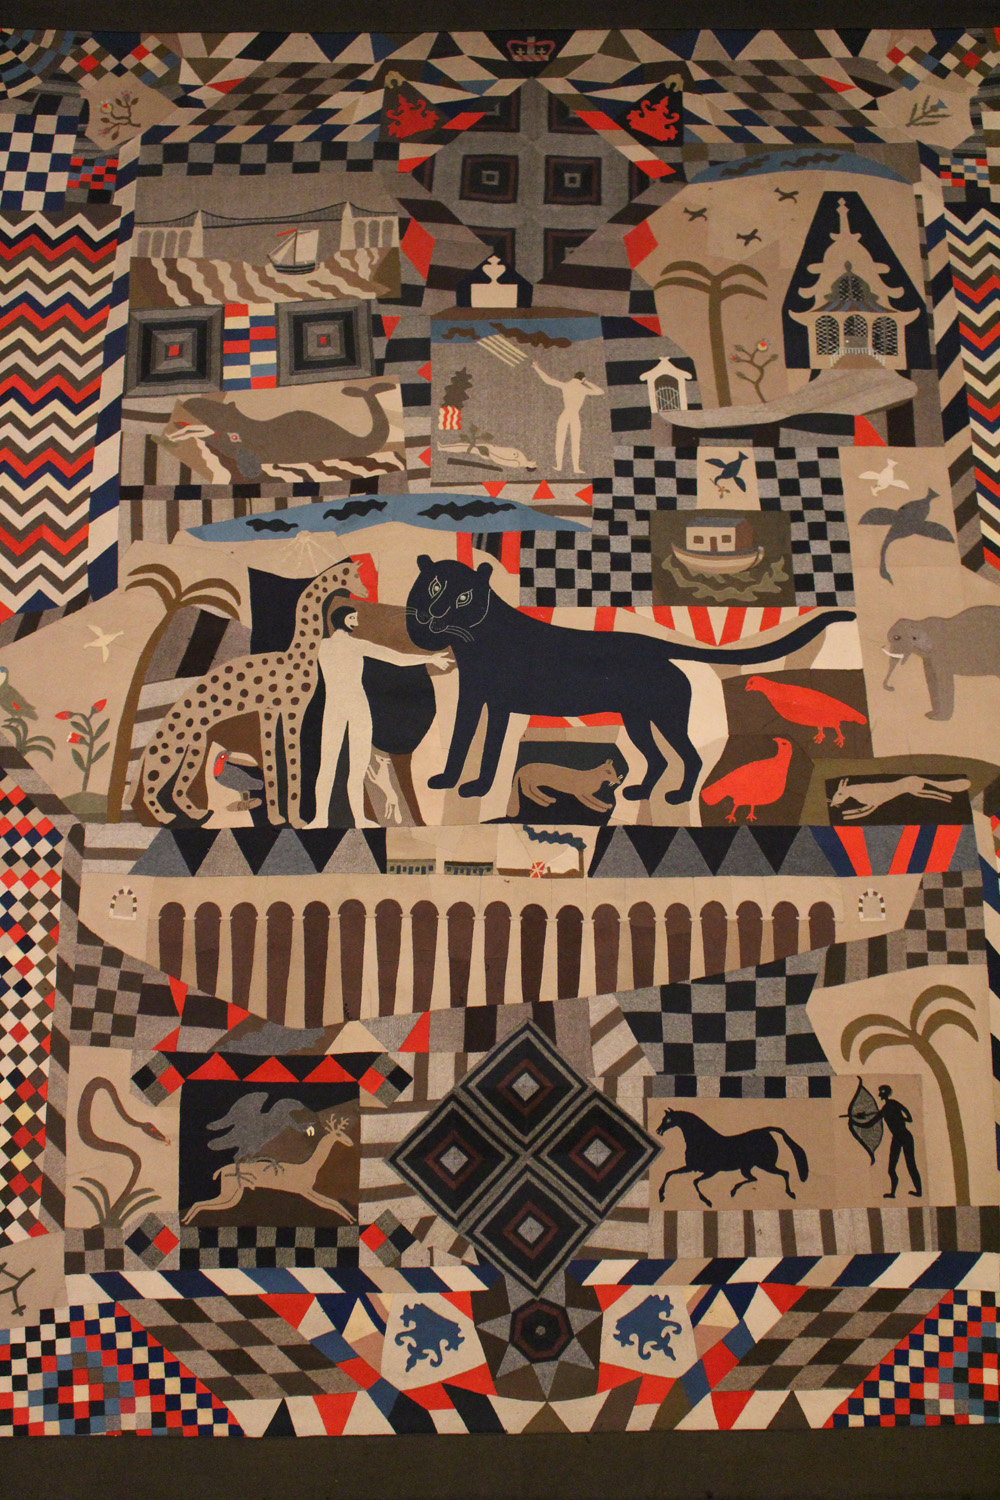 James Williams, Patchwork bedcover, 1818 - 1895